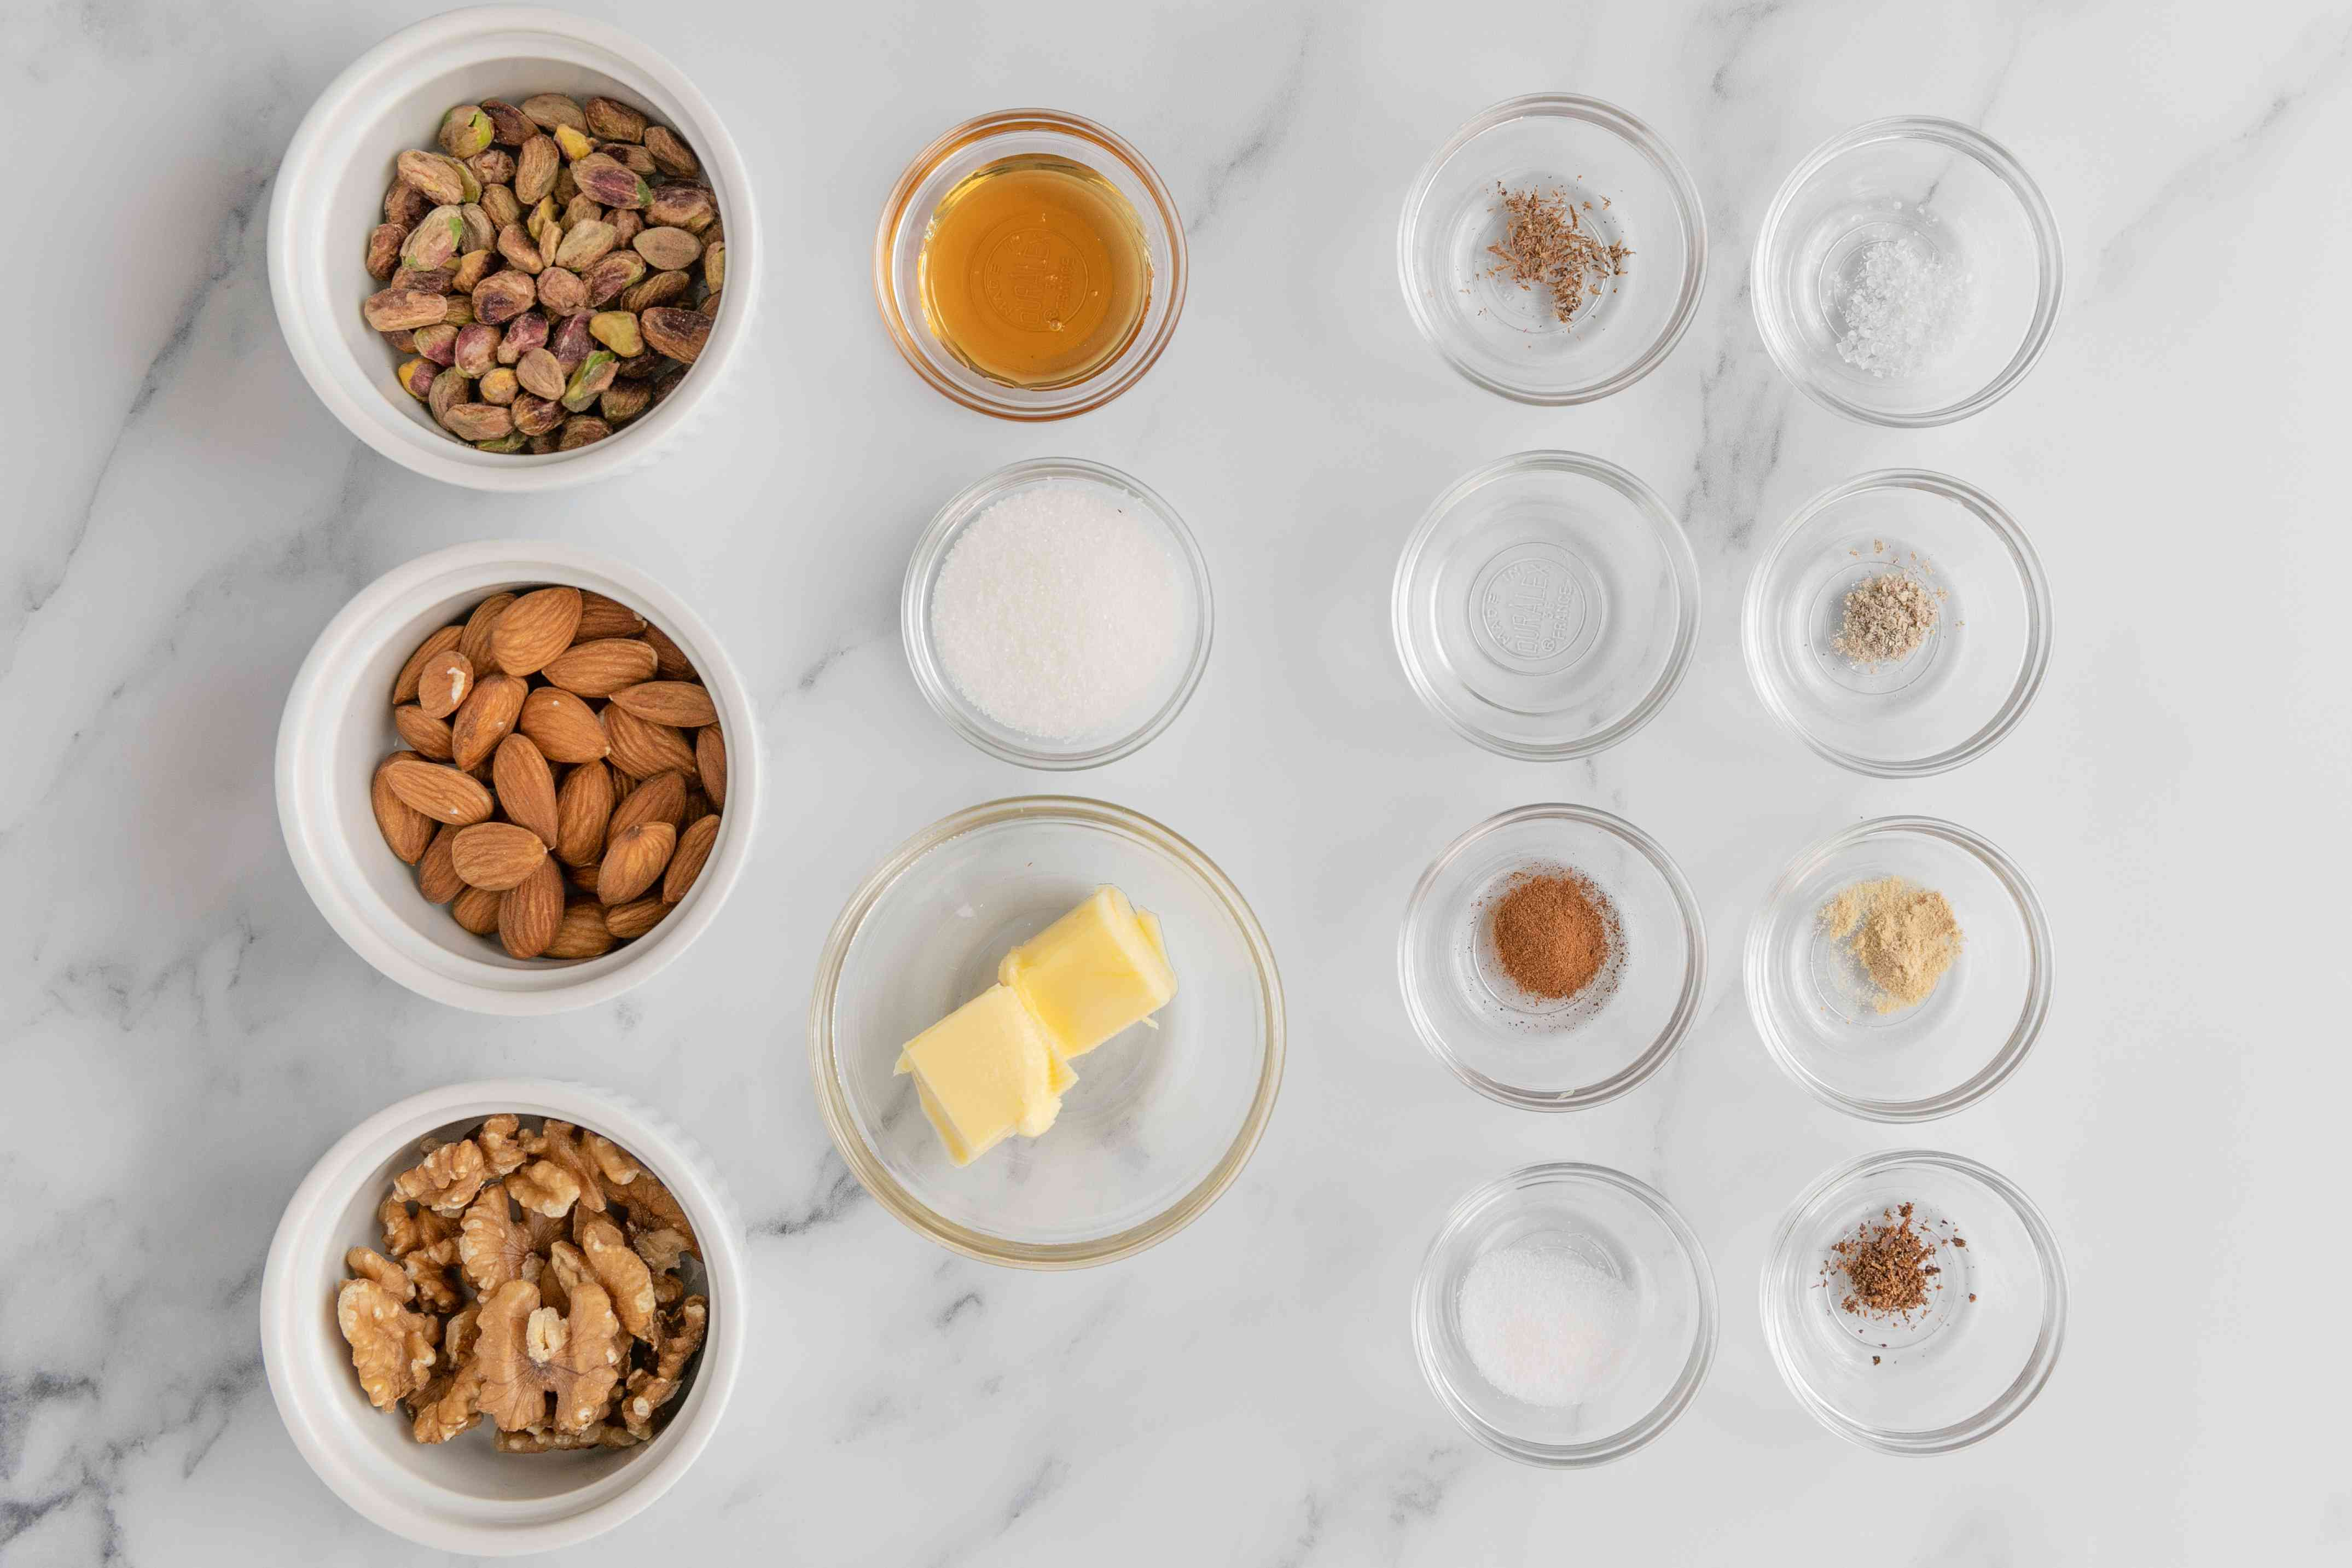 Ingredients for honey spiced nuts